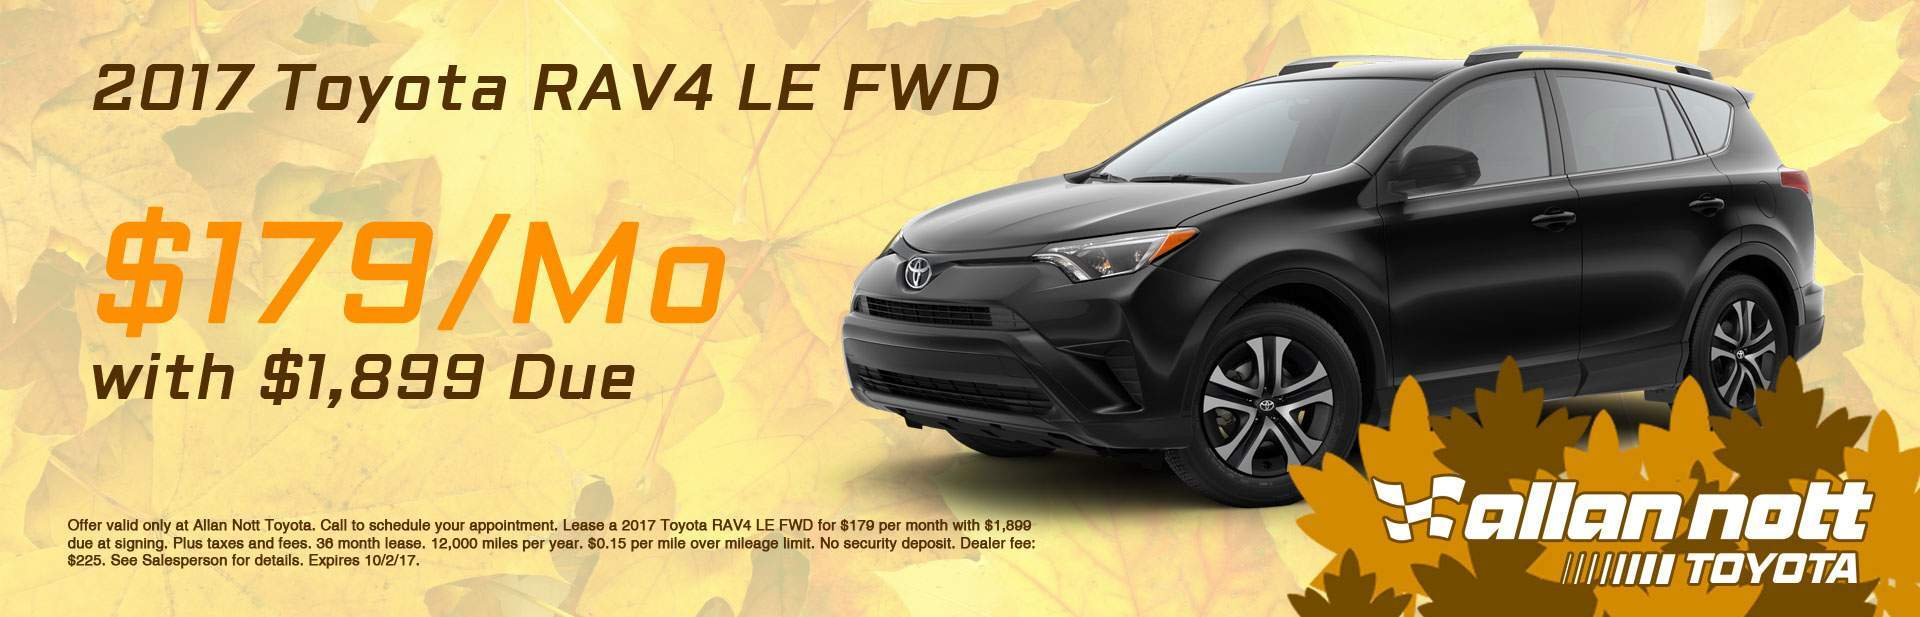 Lease a 2017 Toyota RAV4 LE FWD for $179/Mo from Allan Nott today!